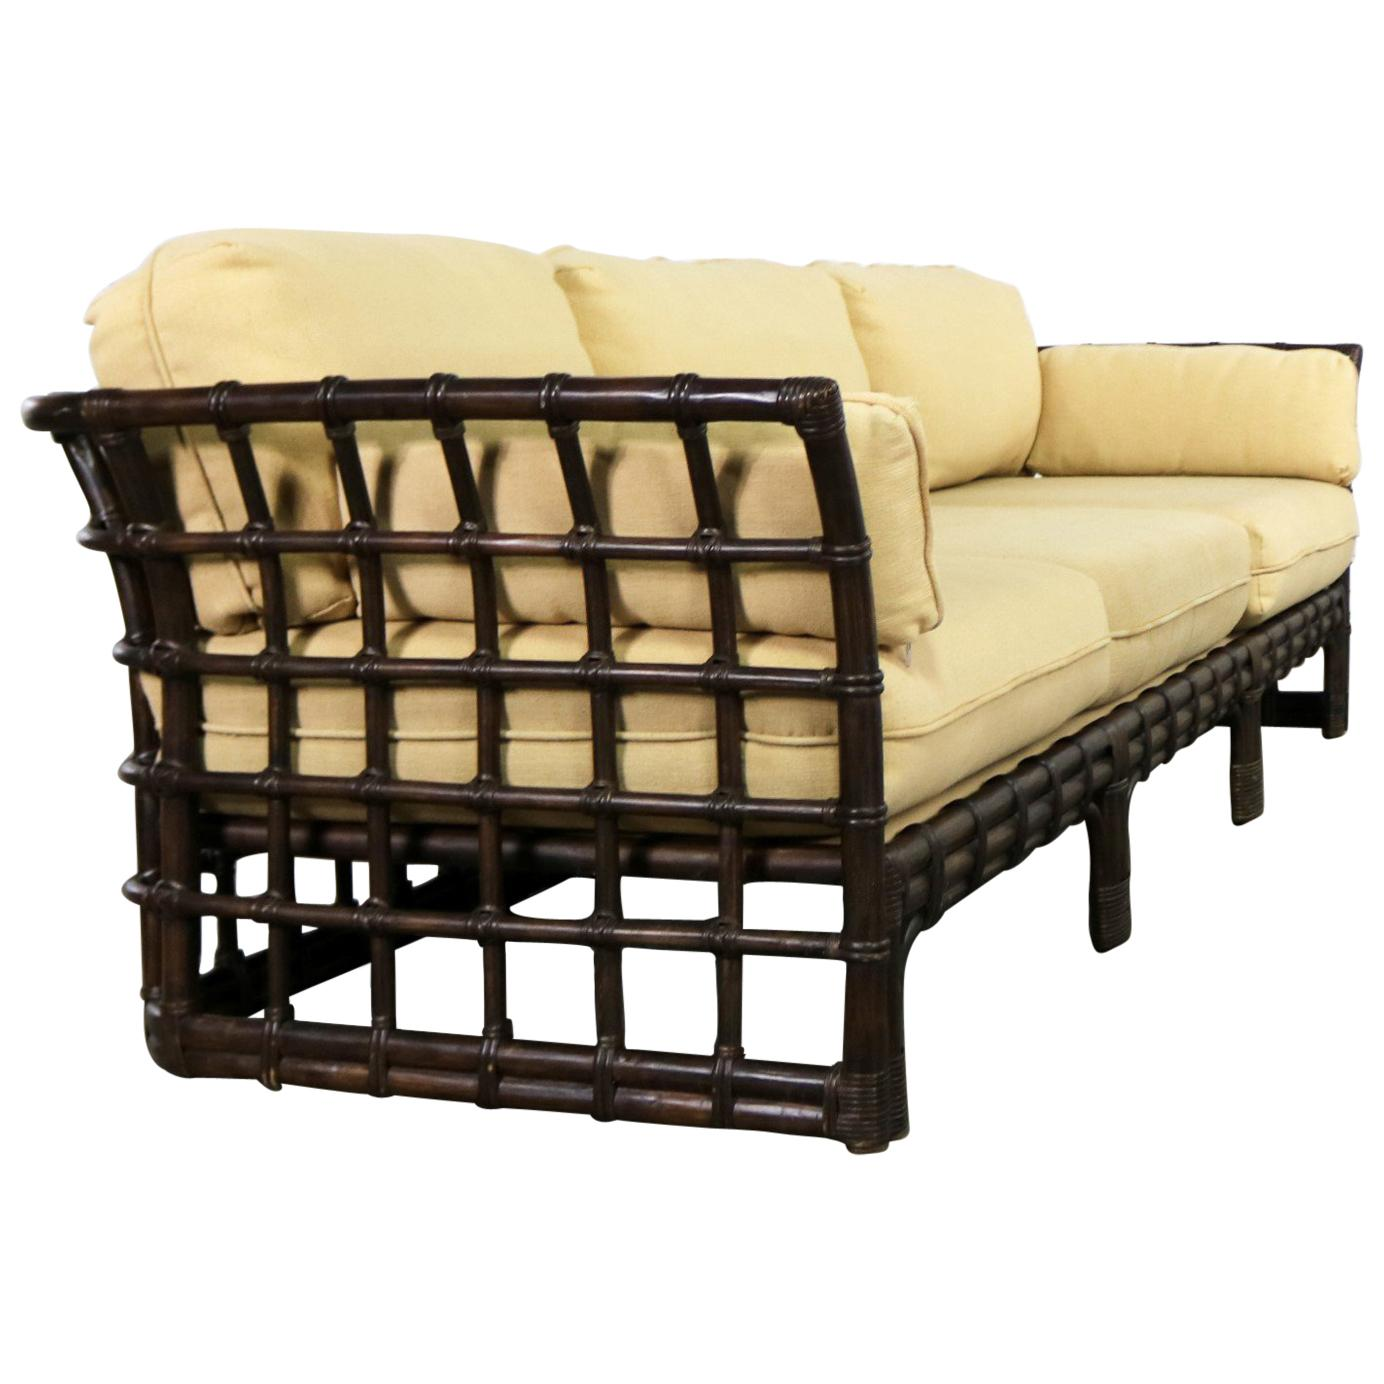 Rattan Sofa Brown Jordan Windowpane Dark Brown Rattan Sofa With Straw Colored Cushions